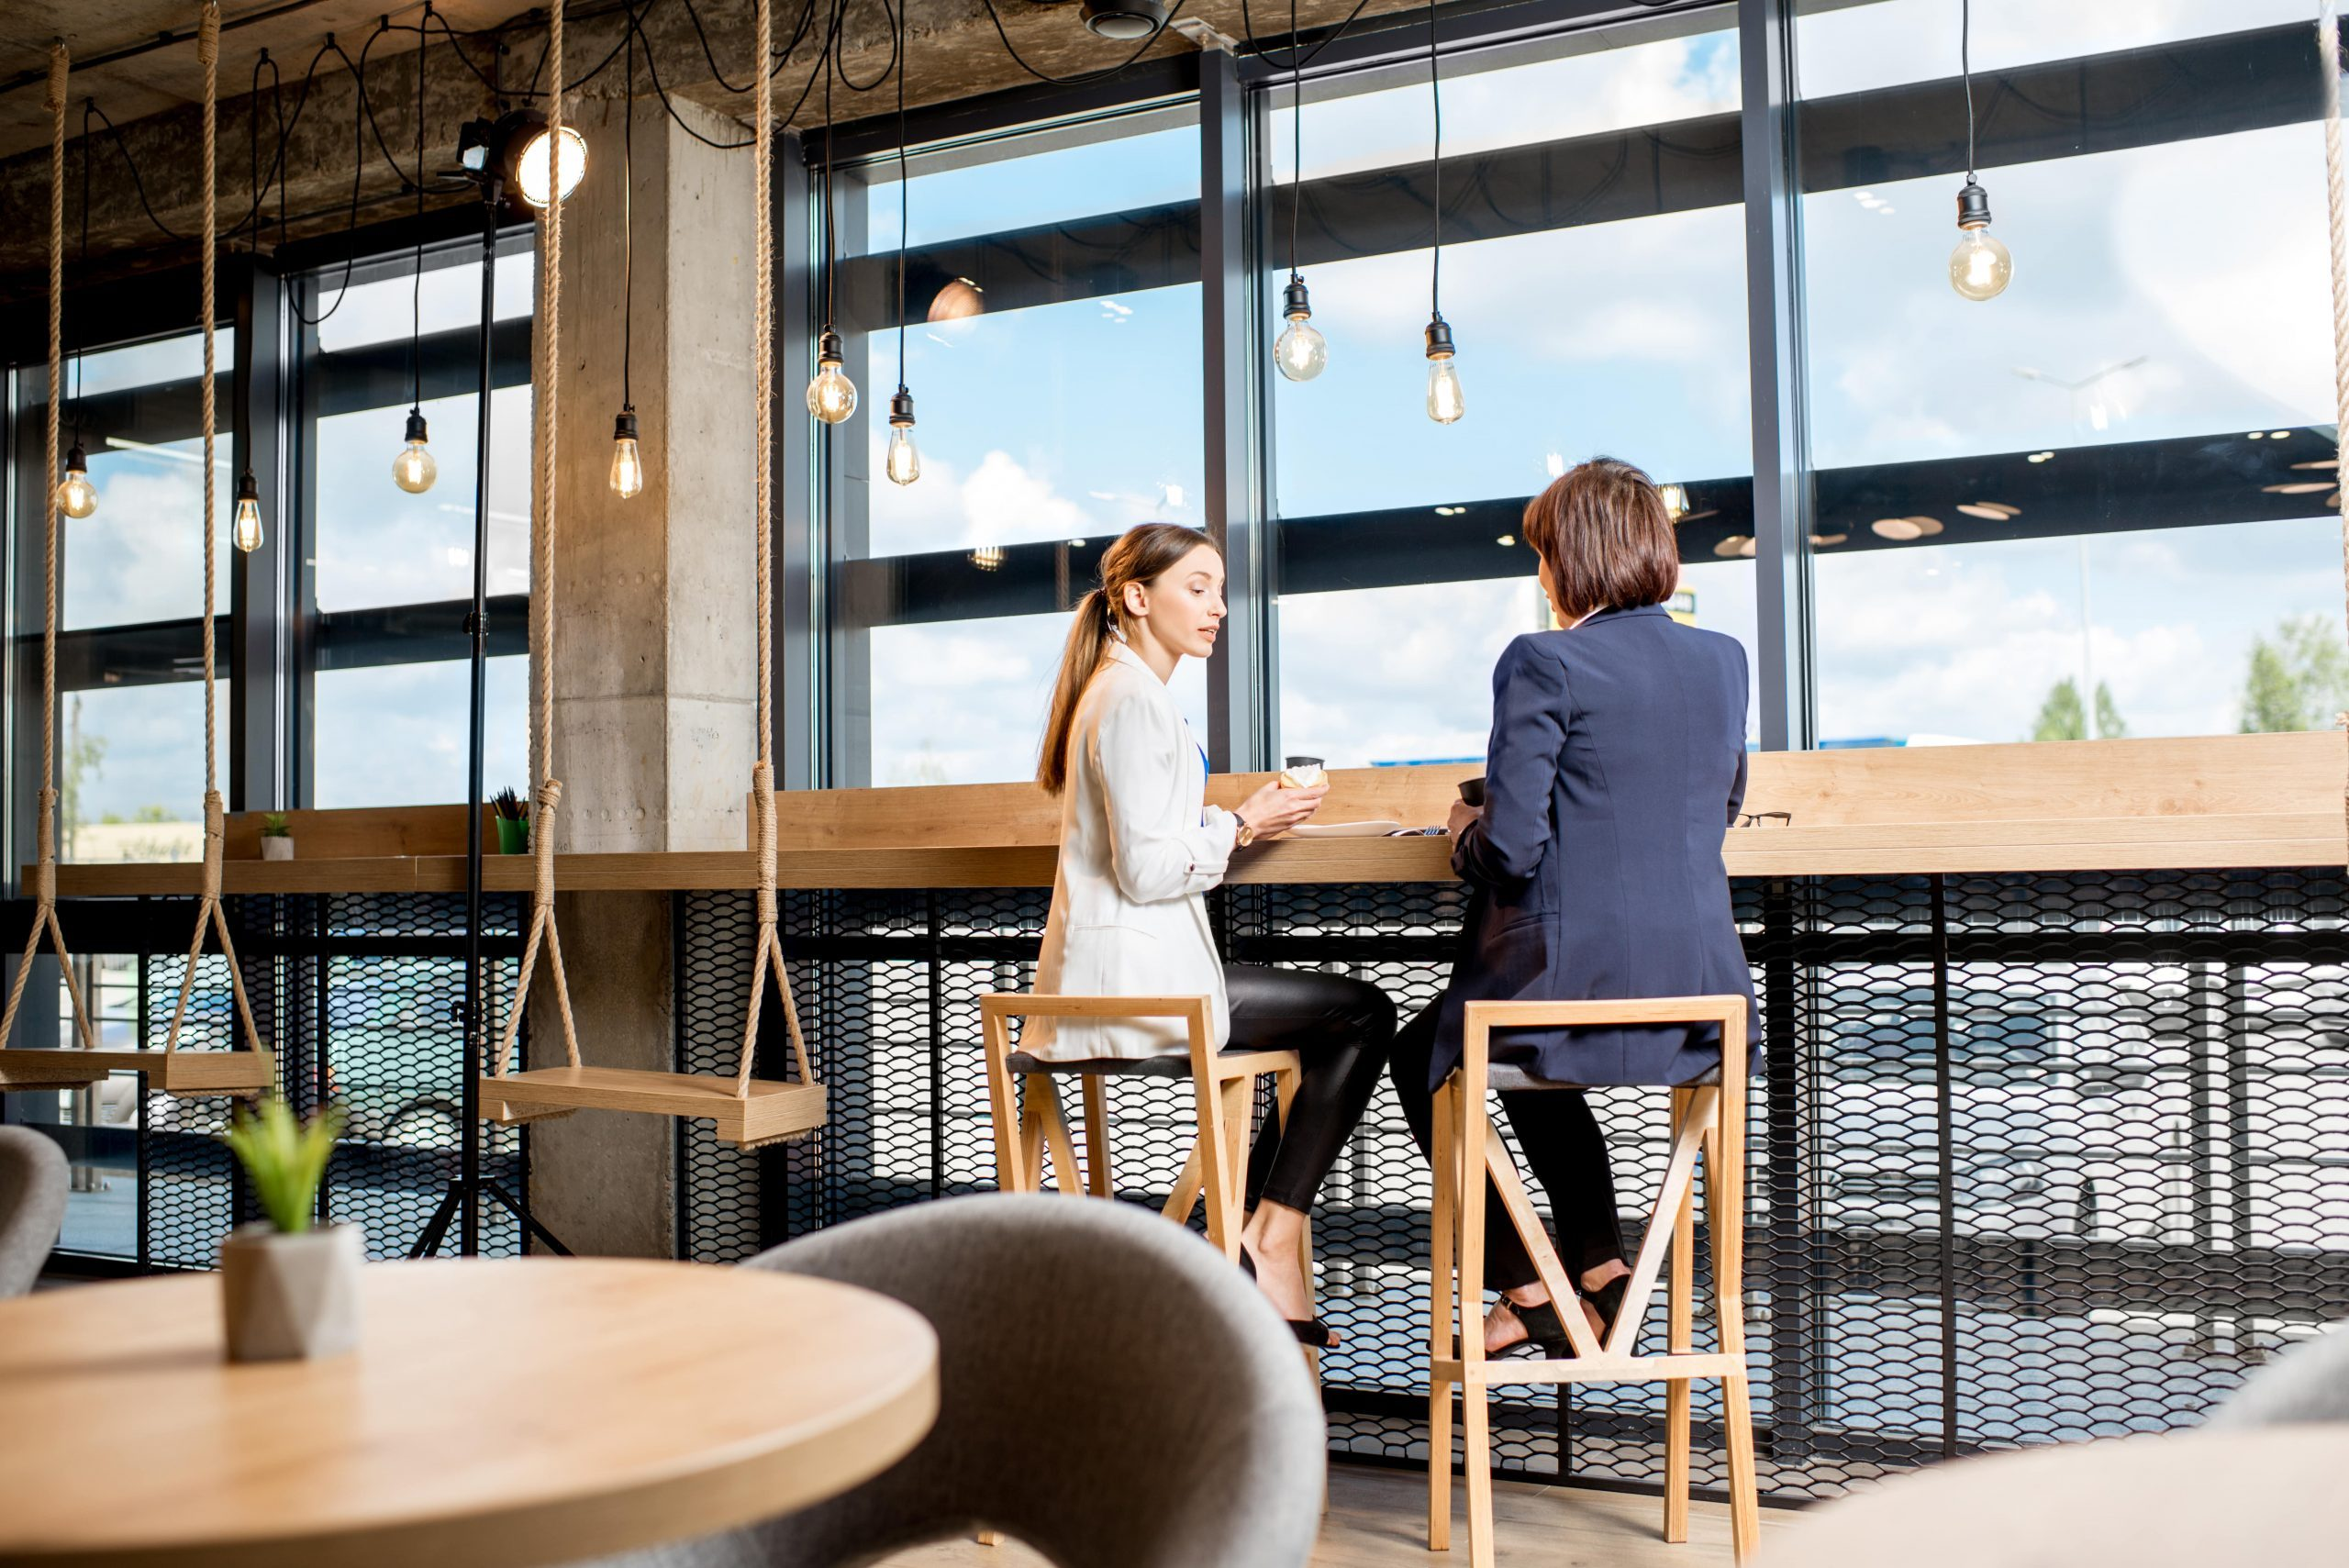 Two business women sitting during a coffee time near the window in the modern cafe interior